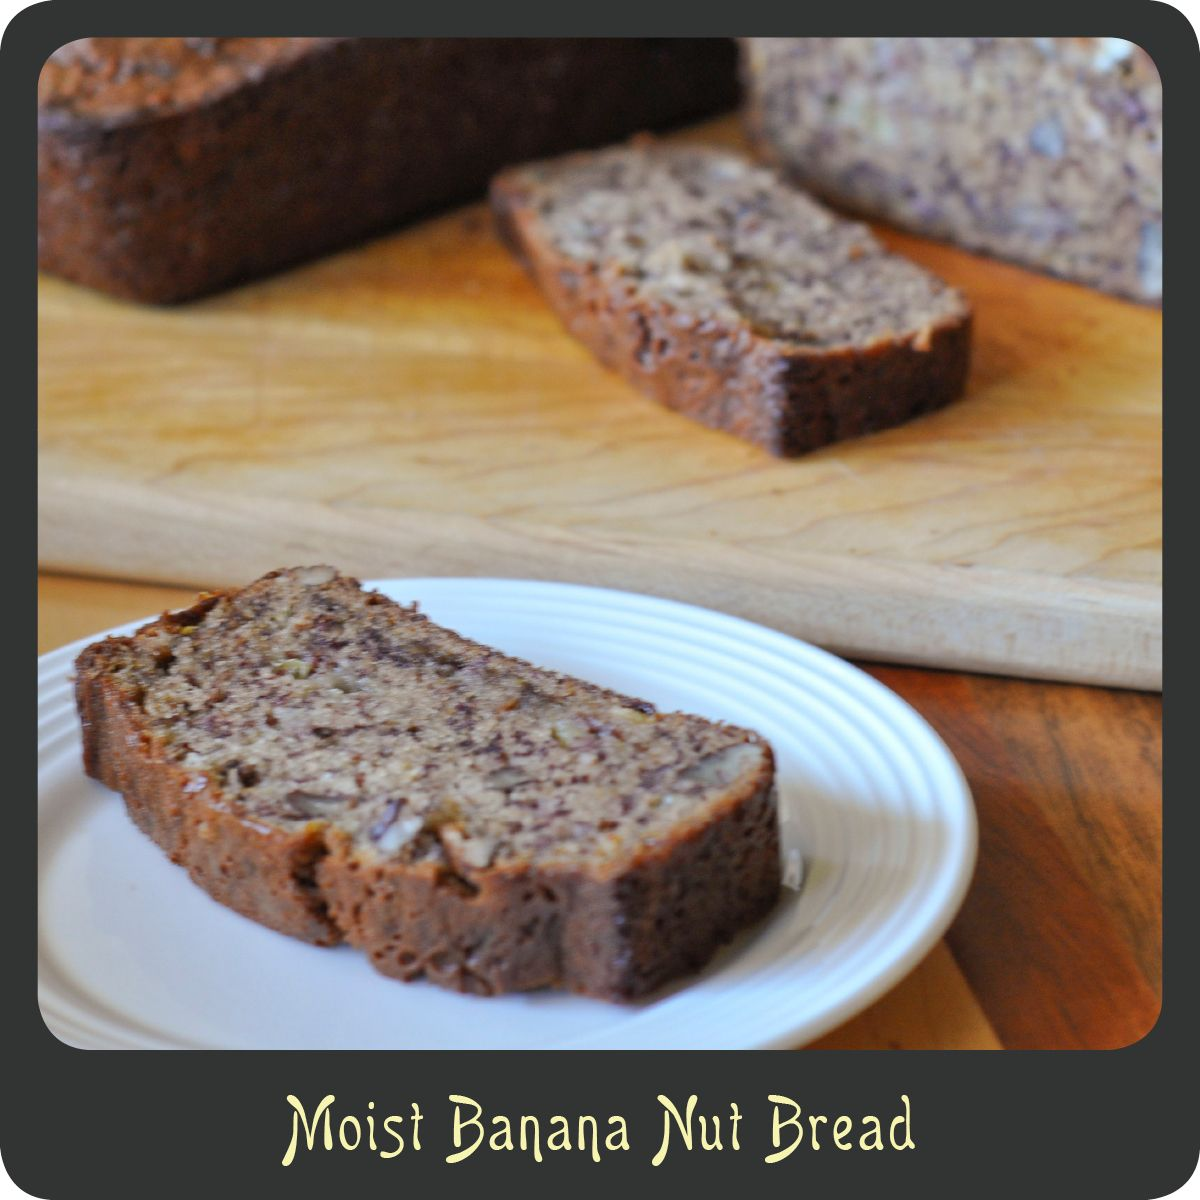 This recipe makes the moistest most delicious banana nut bread ever! I have been making it for years. It is the perfect amount of sweetness for a morning treat. I love it warmed up with a little bi...